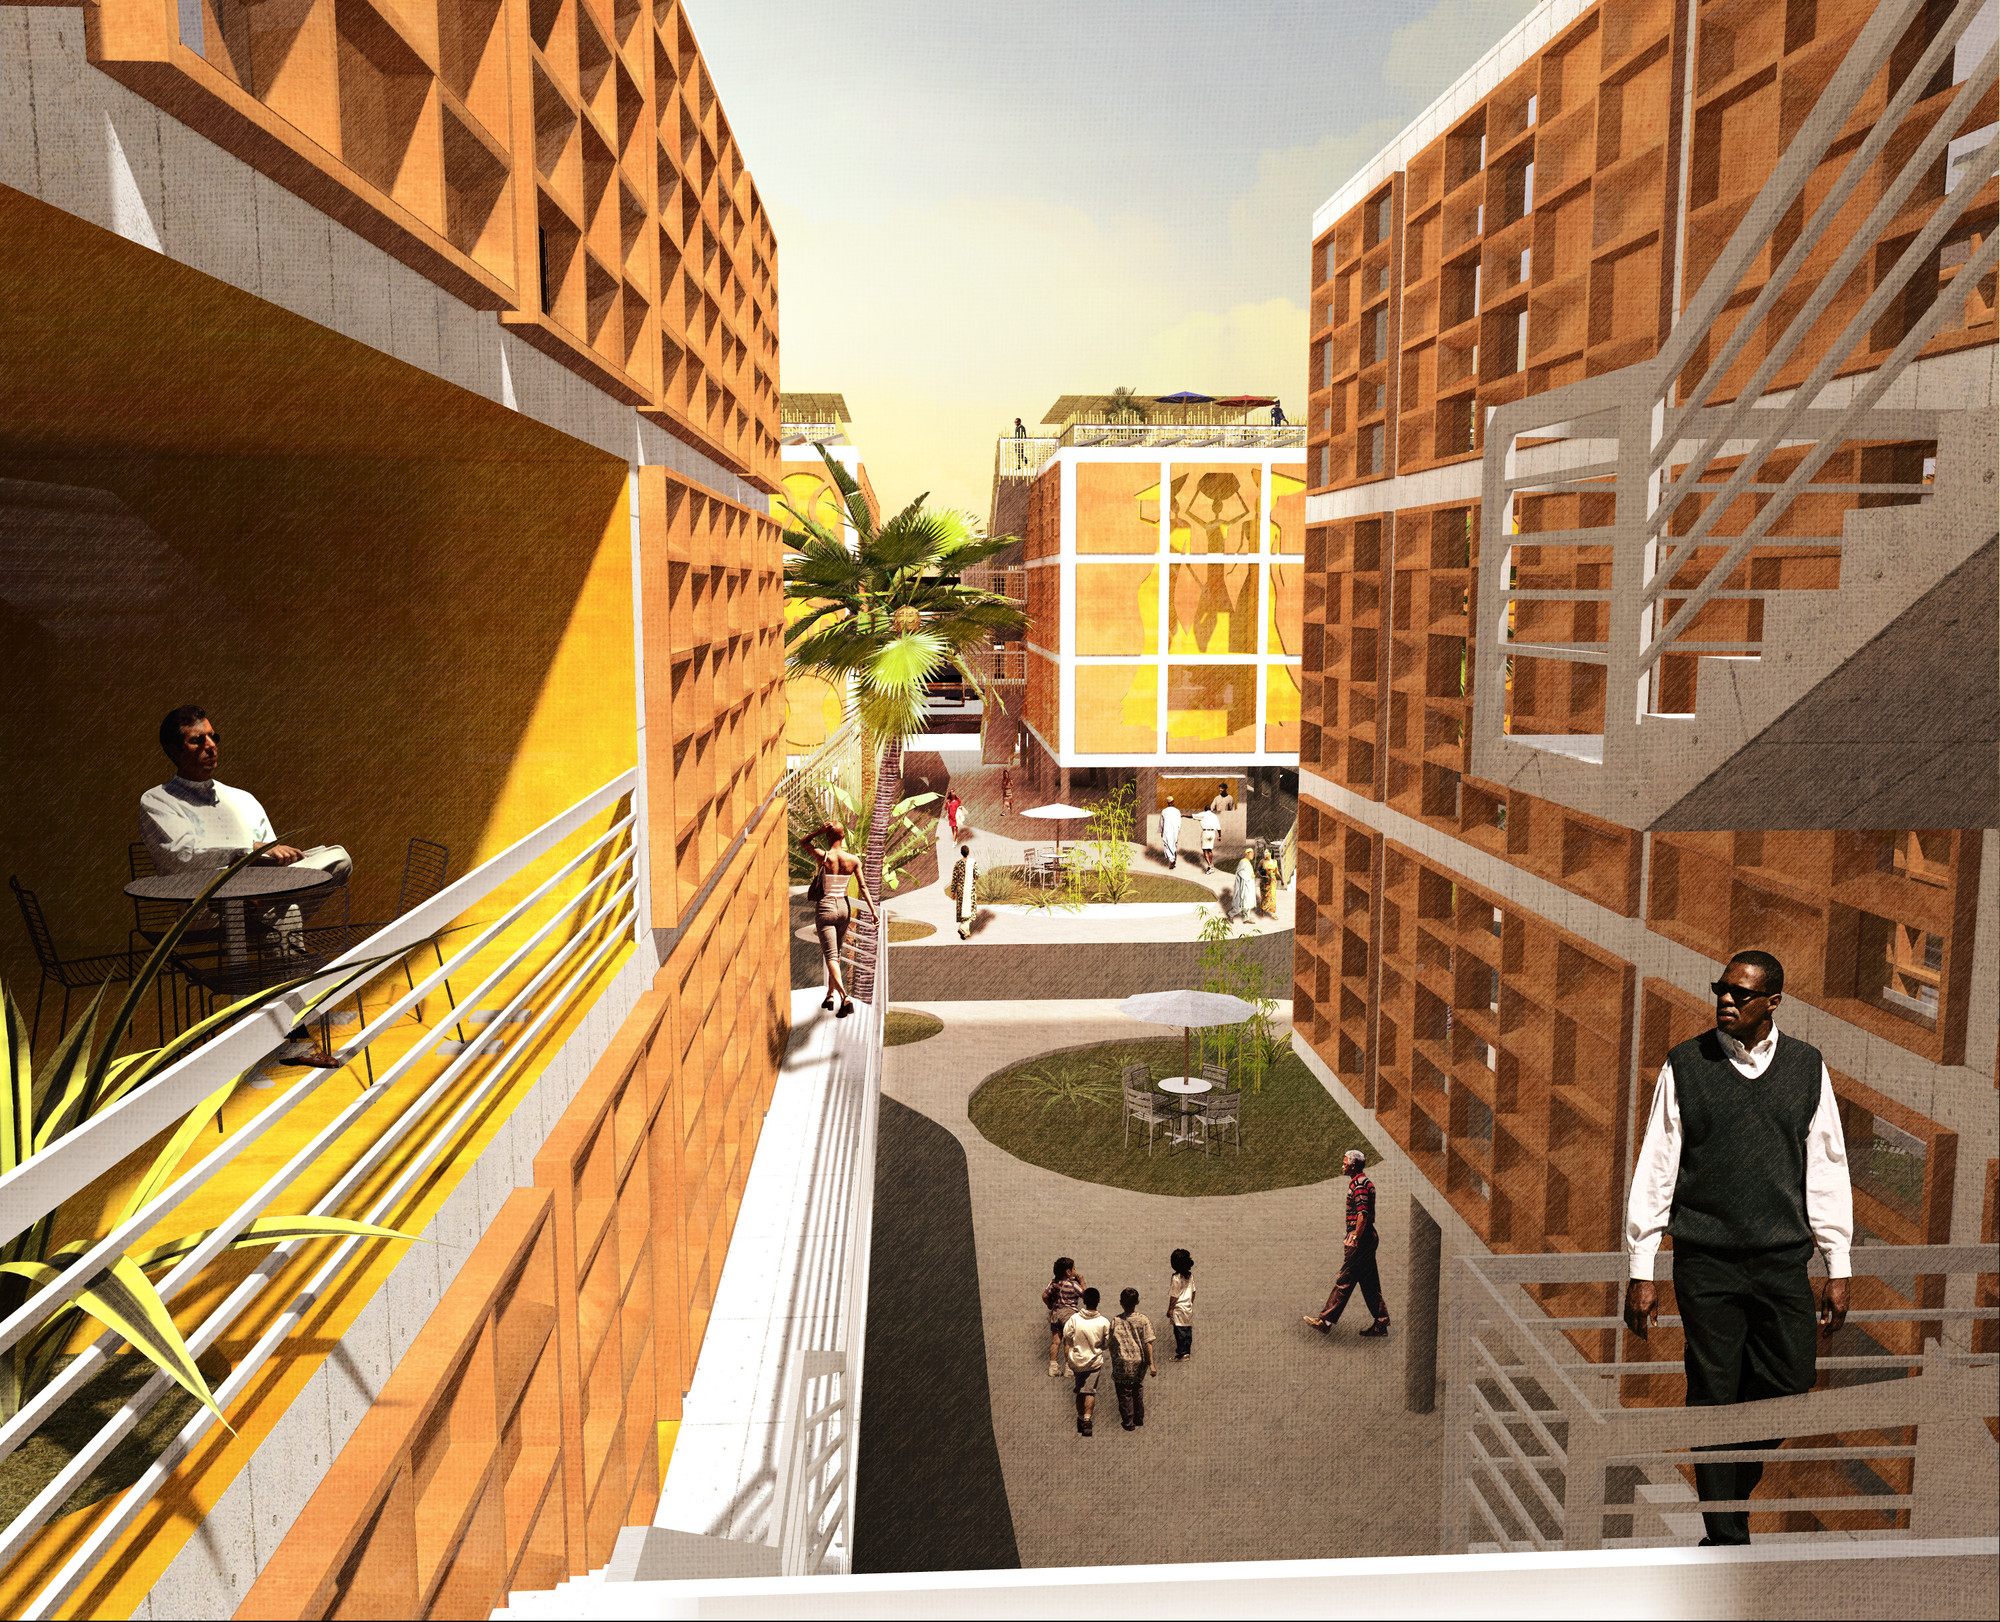 The Yaba Prototype, designed as a model for housing to be used across Nigeria. Image © NLÉ Architects